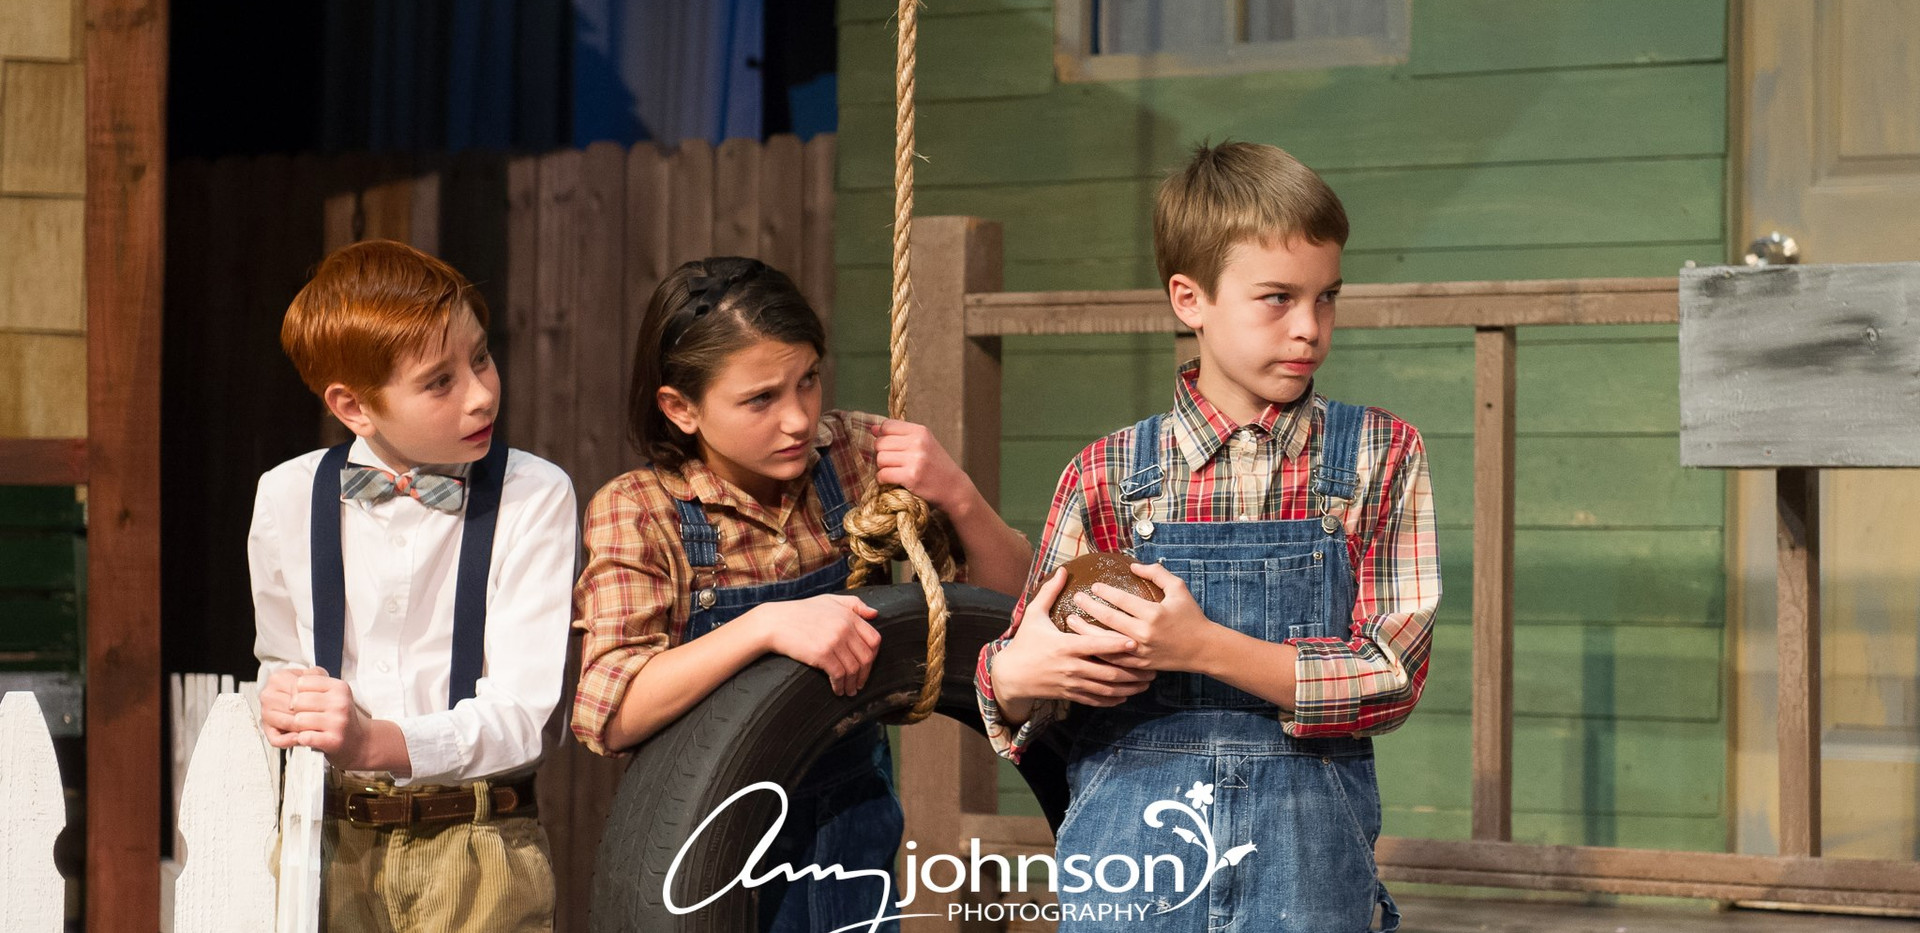 To Kill a Mockingbird - Scout, Jem, and Dill